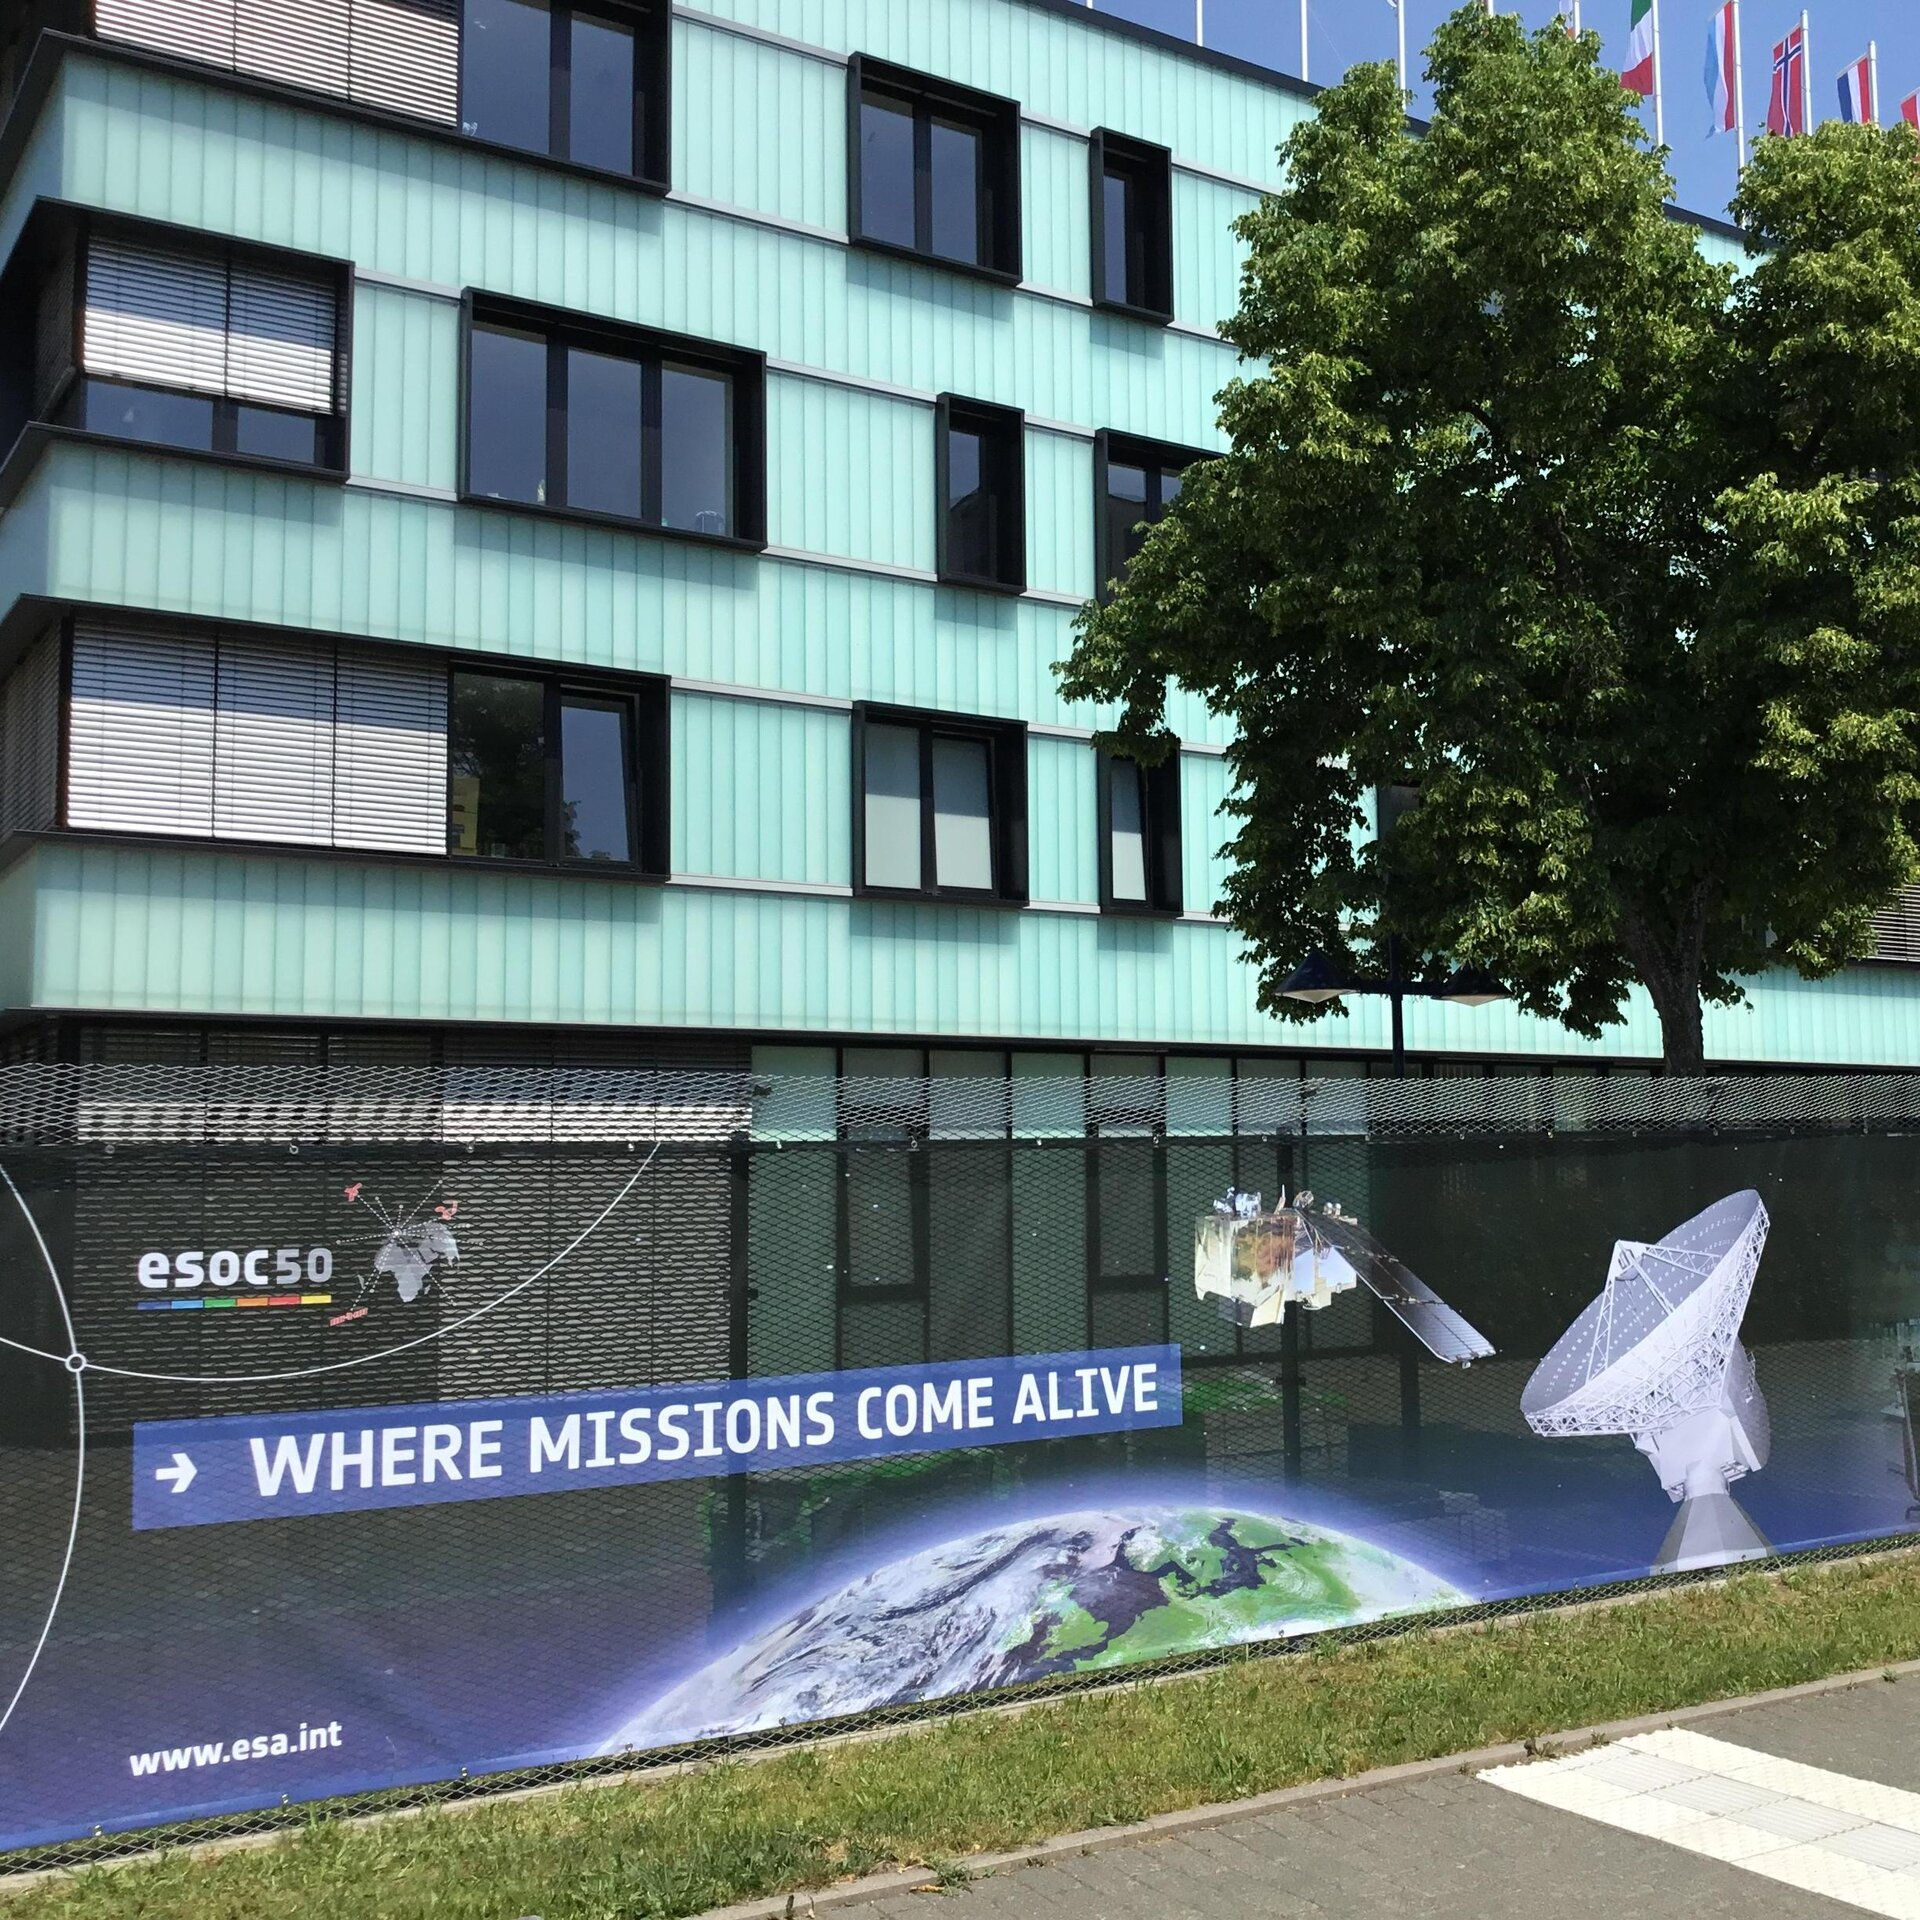 ESOC celebrates its 50th anniversary in 2017